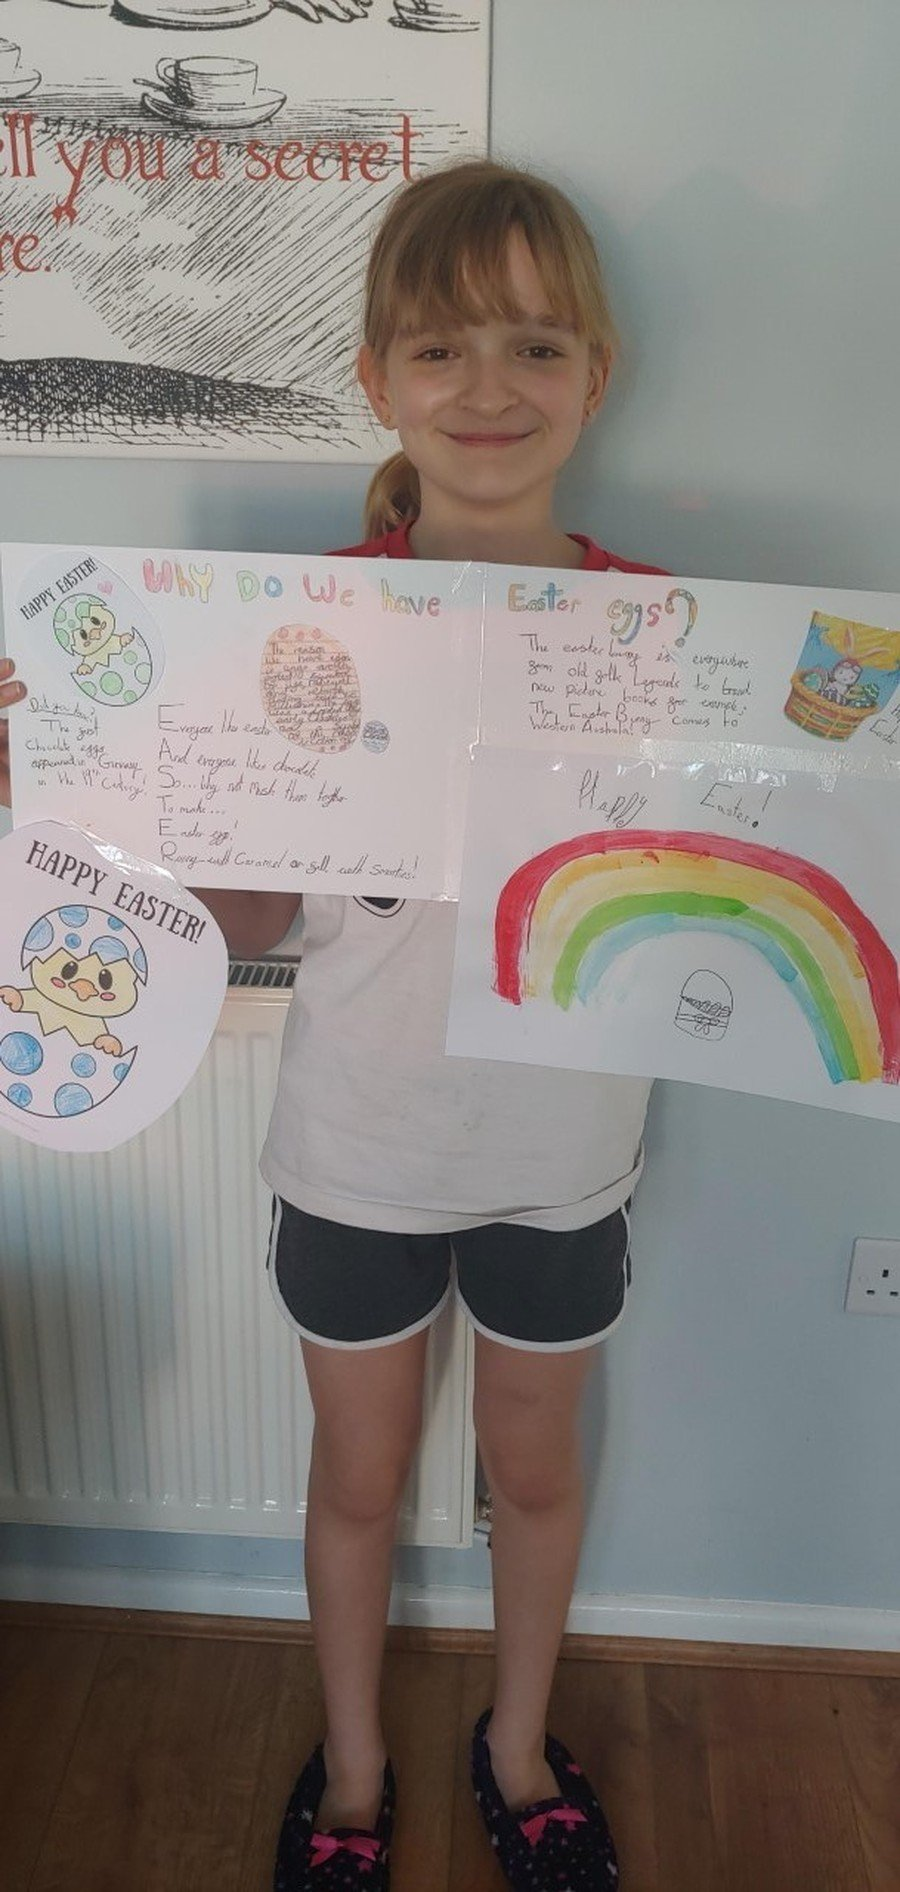 Emily (Y6) Easter homework-Why do we have Easter Eggs?